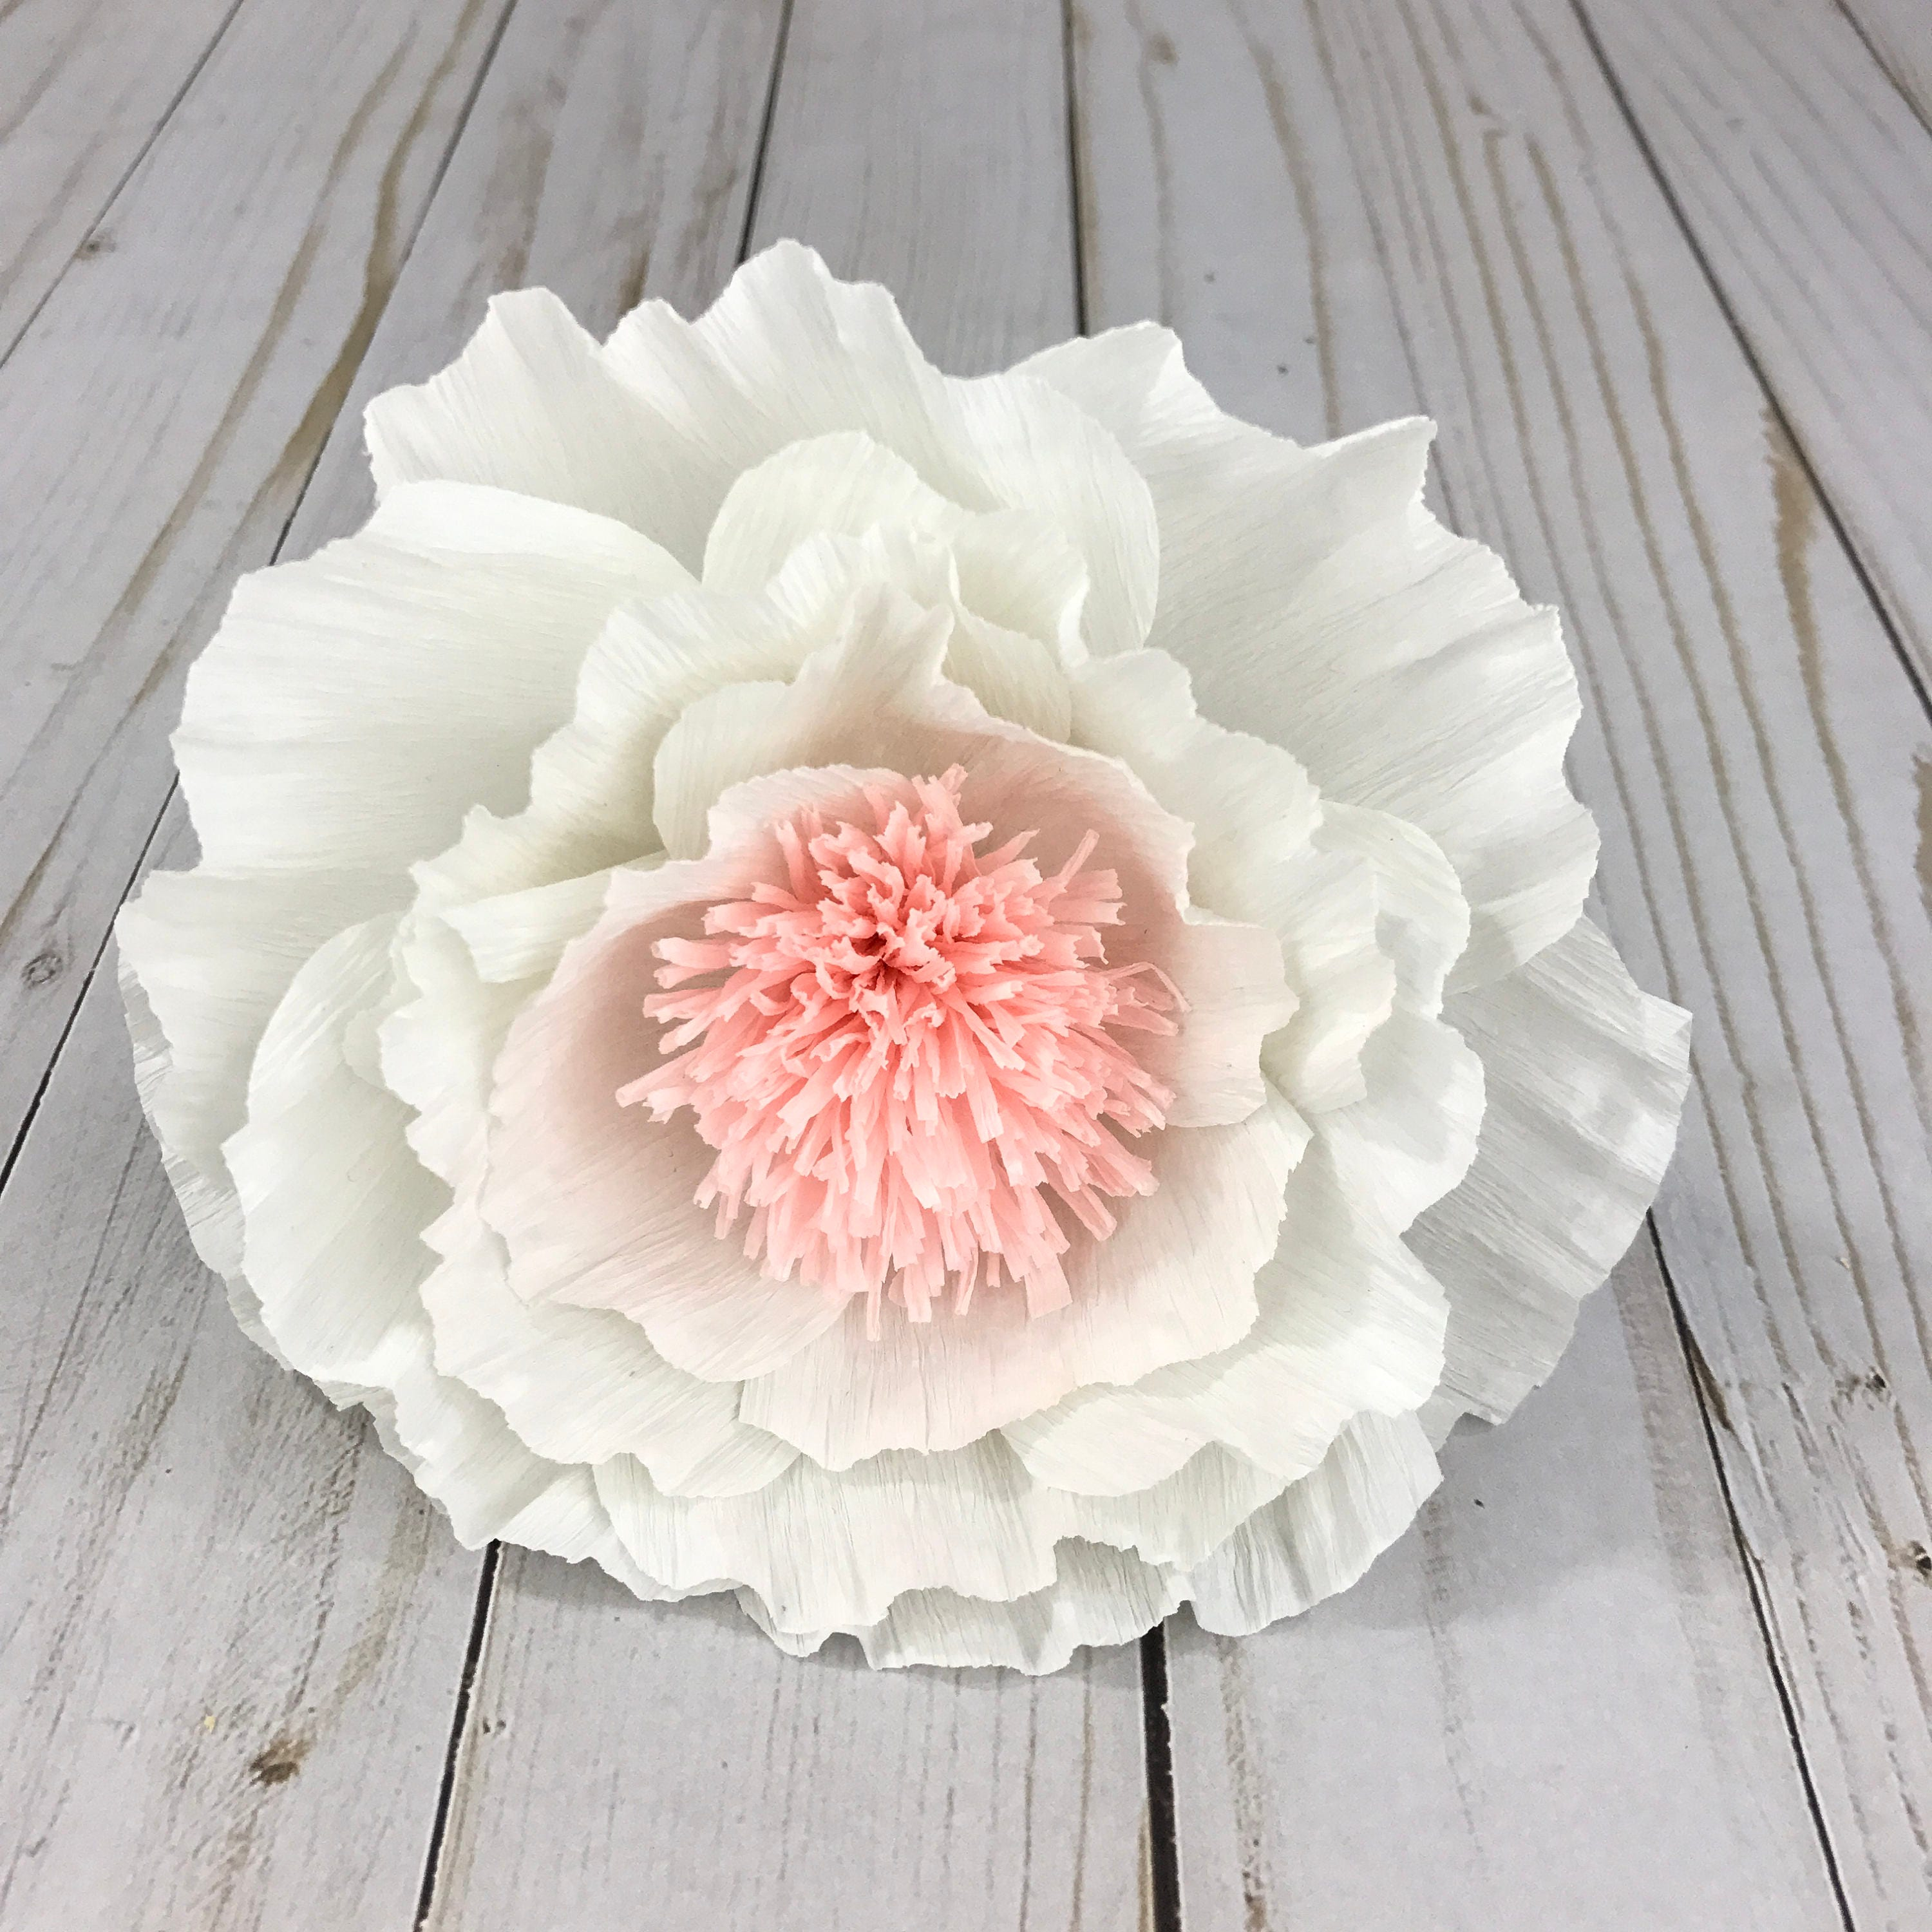 Paper flowers peony paper peony flower wall decor crepe paper flowers peony paper peony flower wall decor crepe paper peony mightylinksfo Gallery